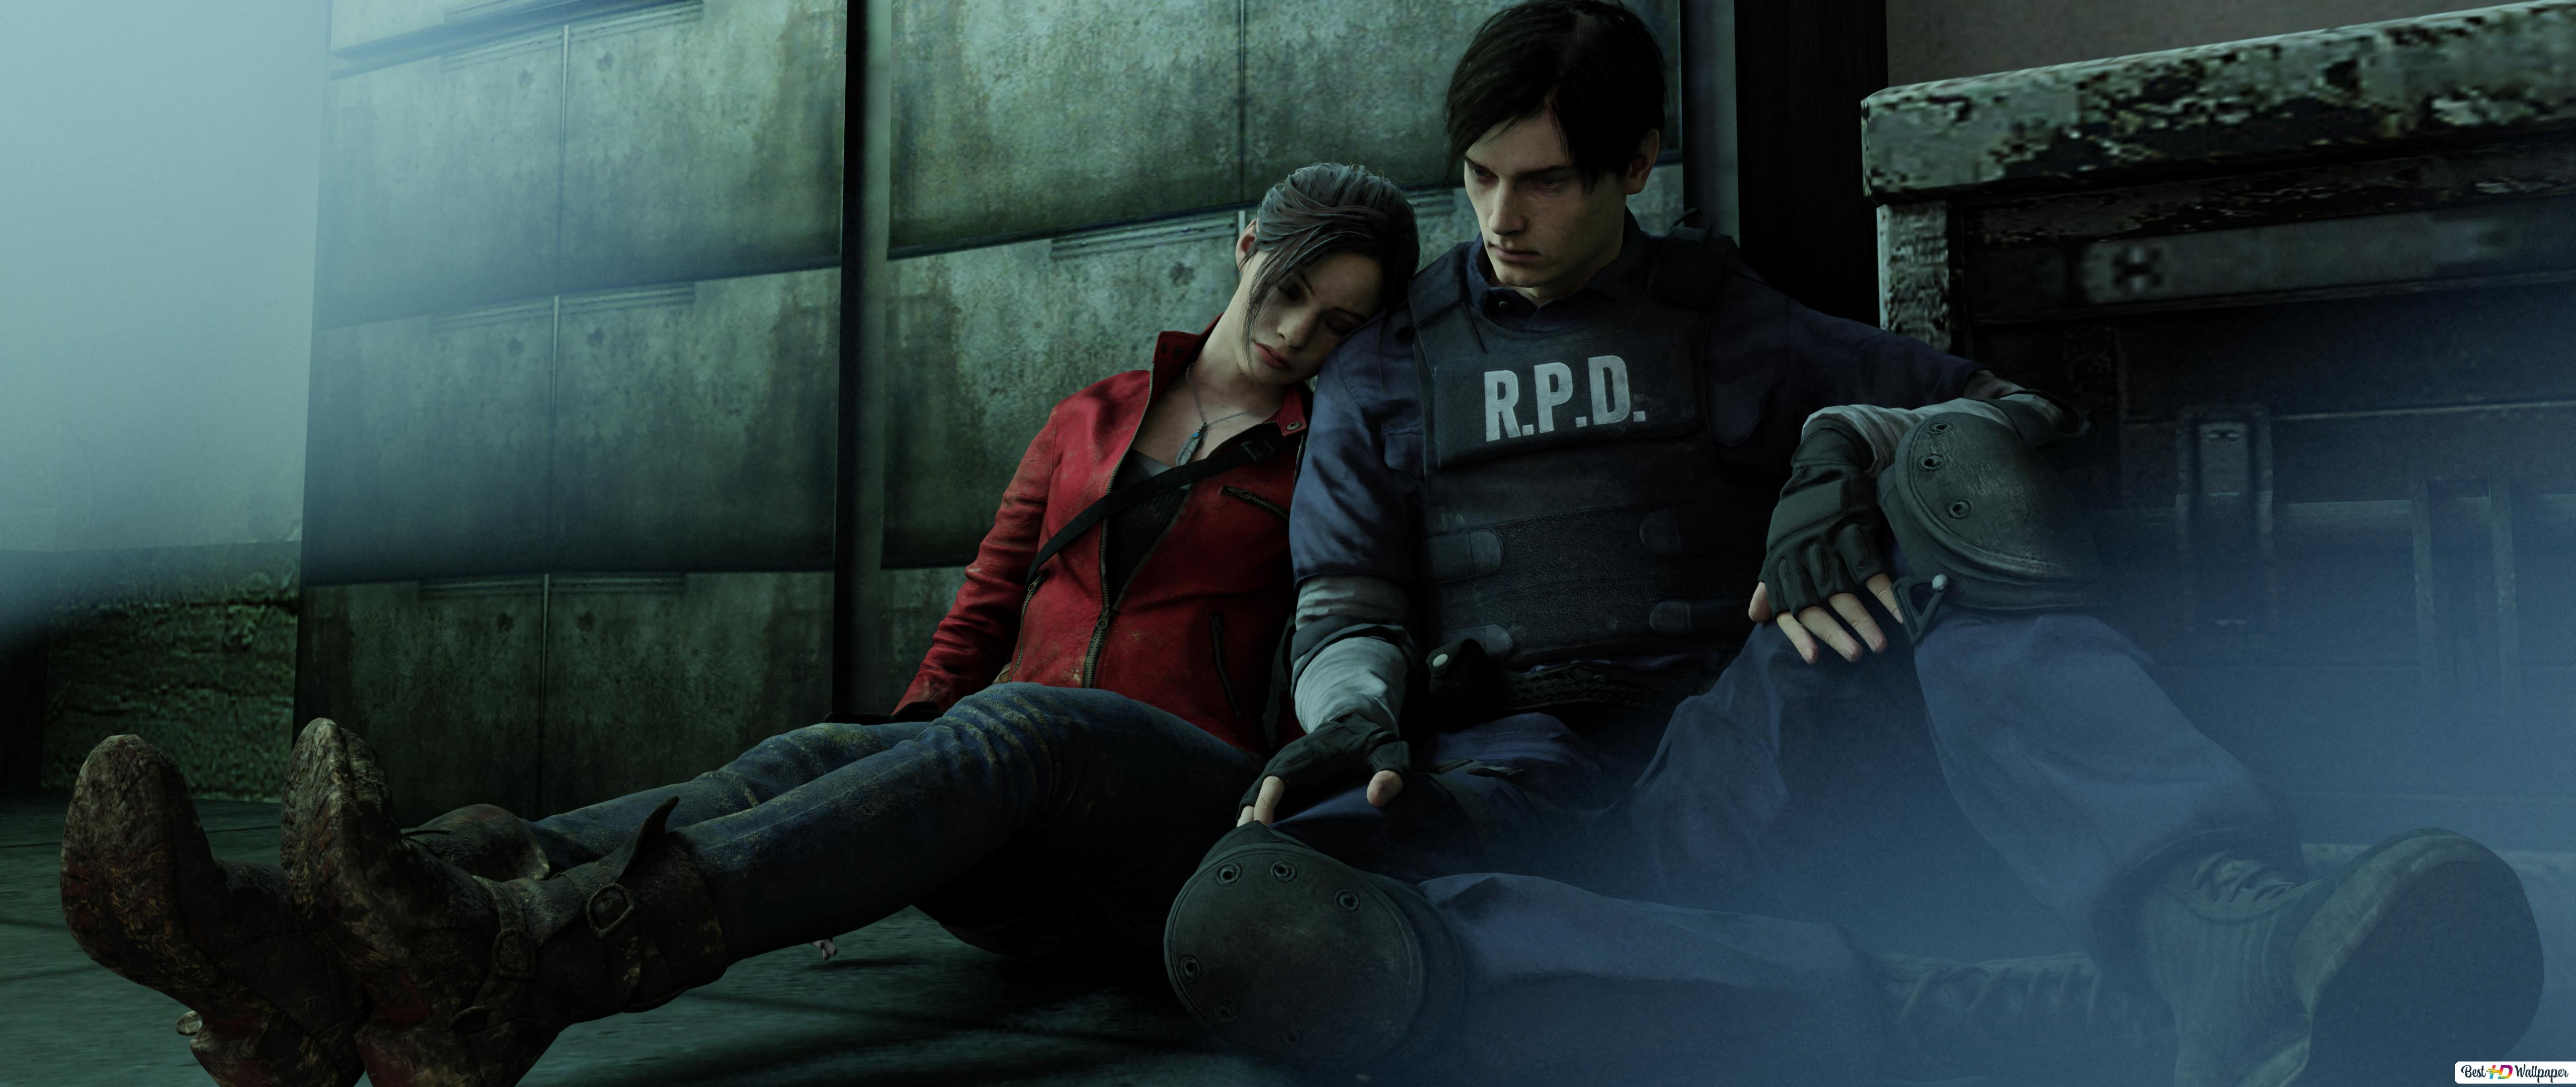 Resident Evil 2 2019 Video Game Leon S Kennedy Claire